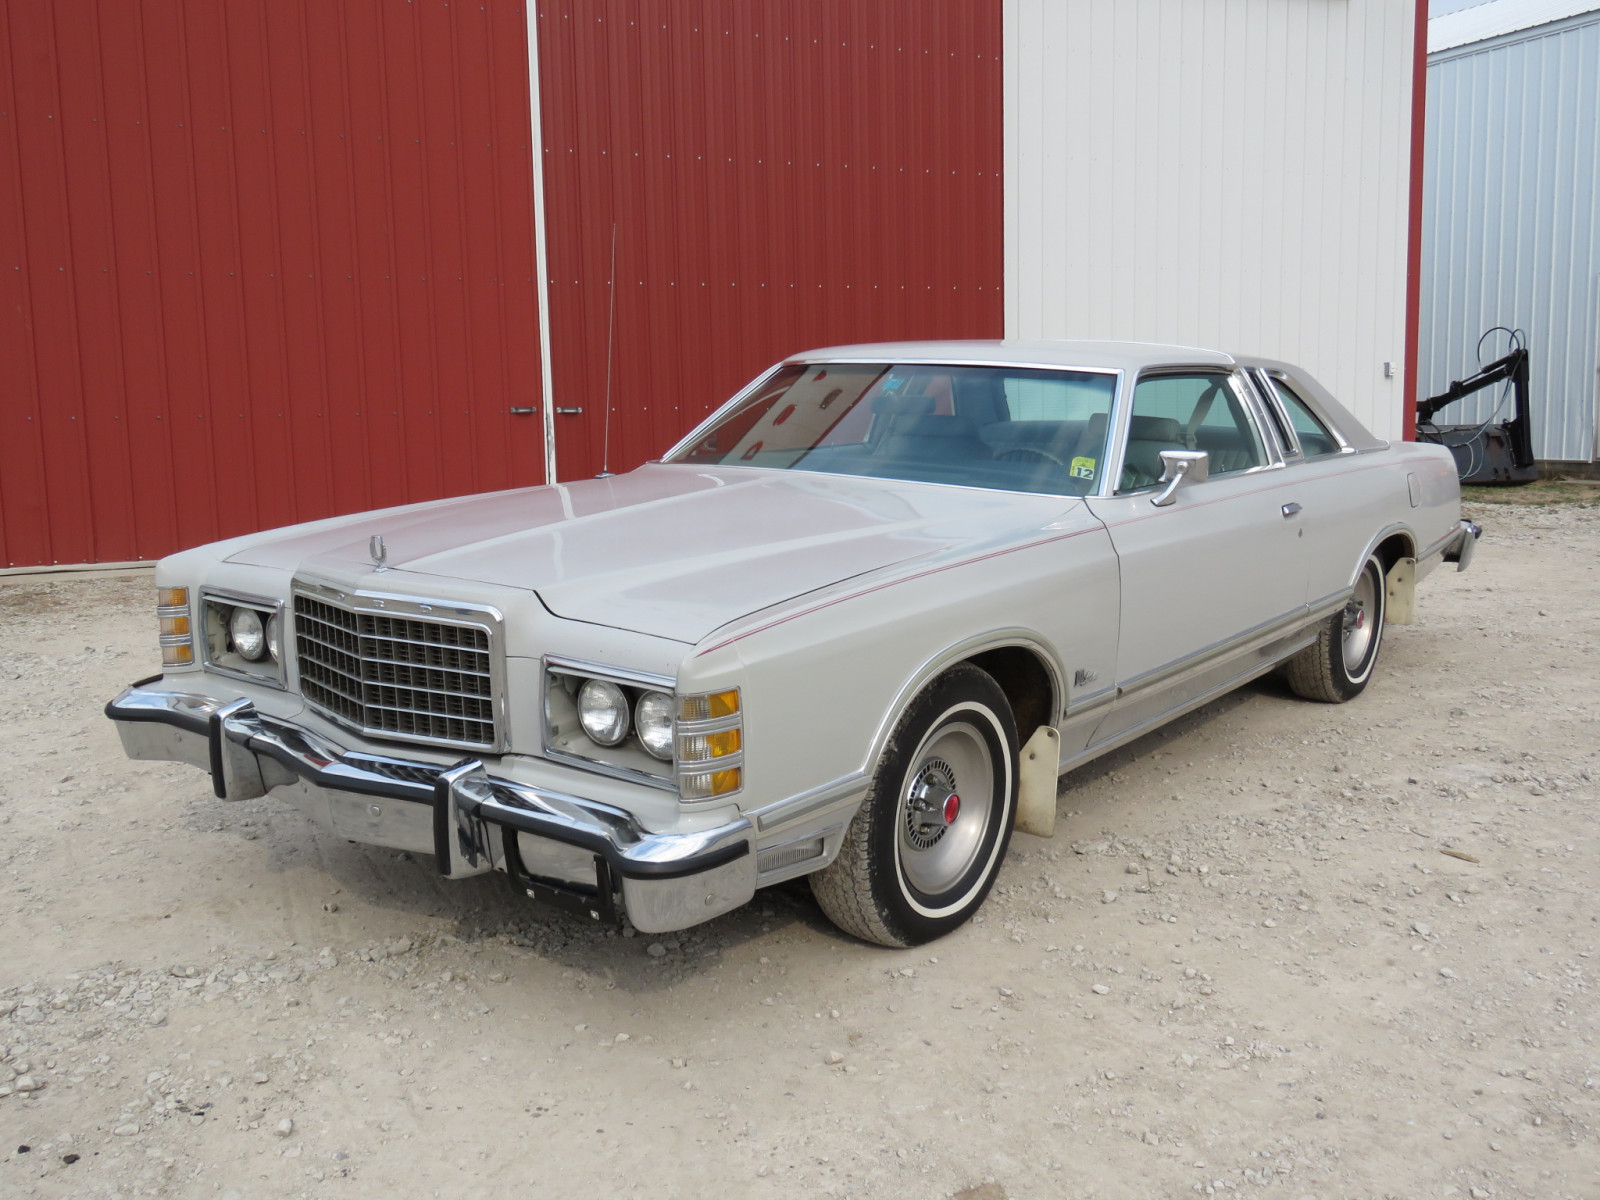 1977 Ford LTD Coupe - Image 1